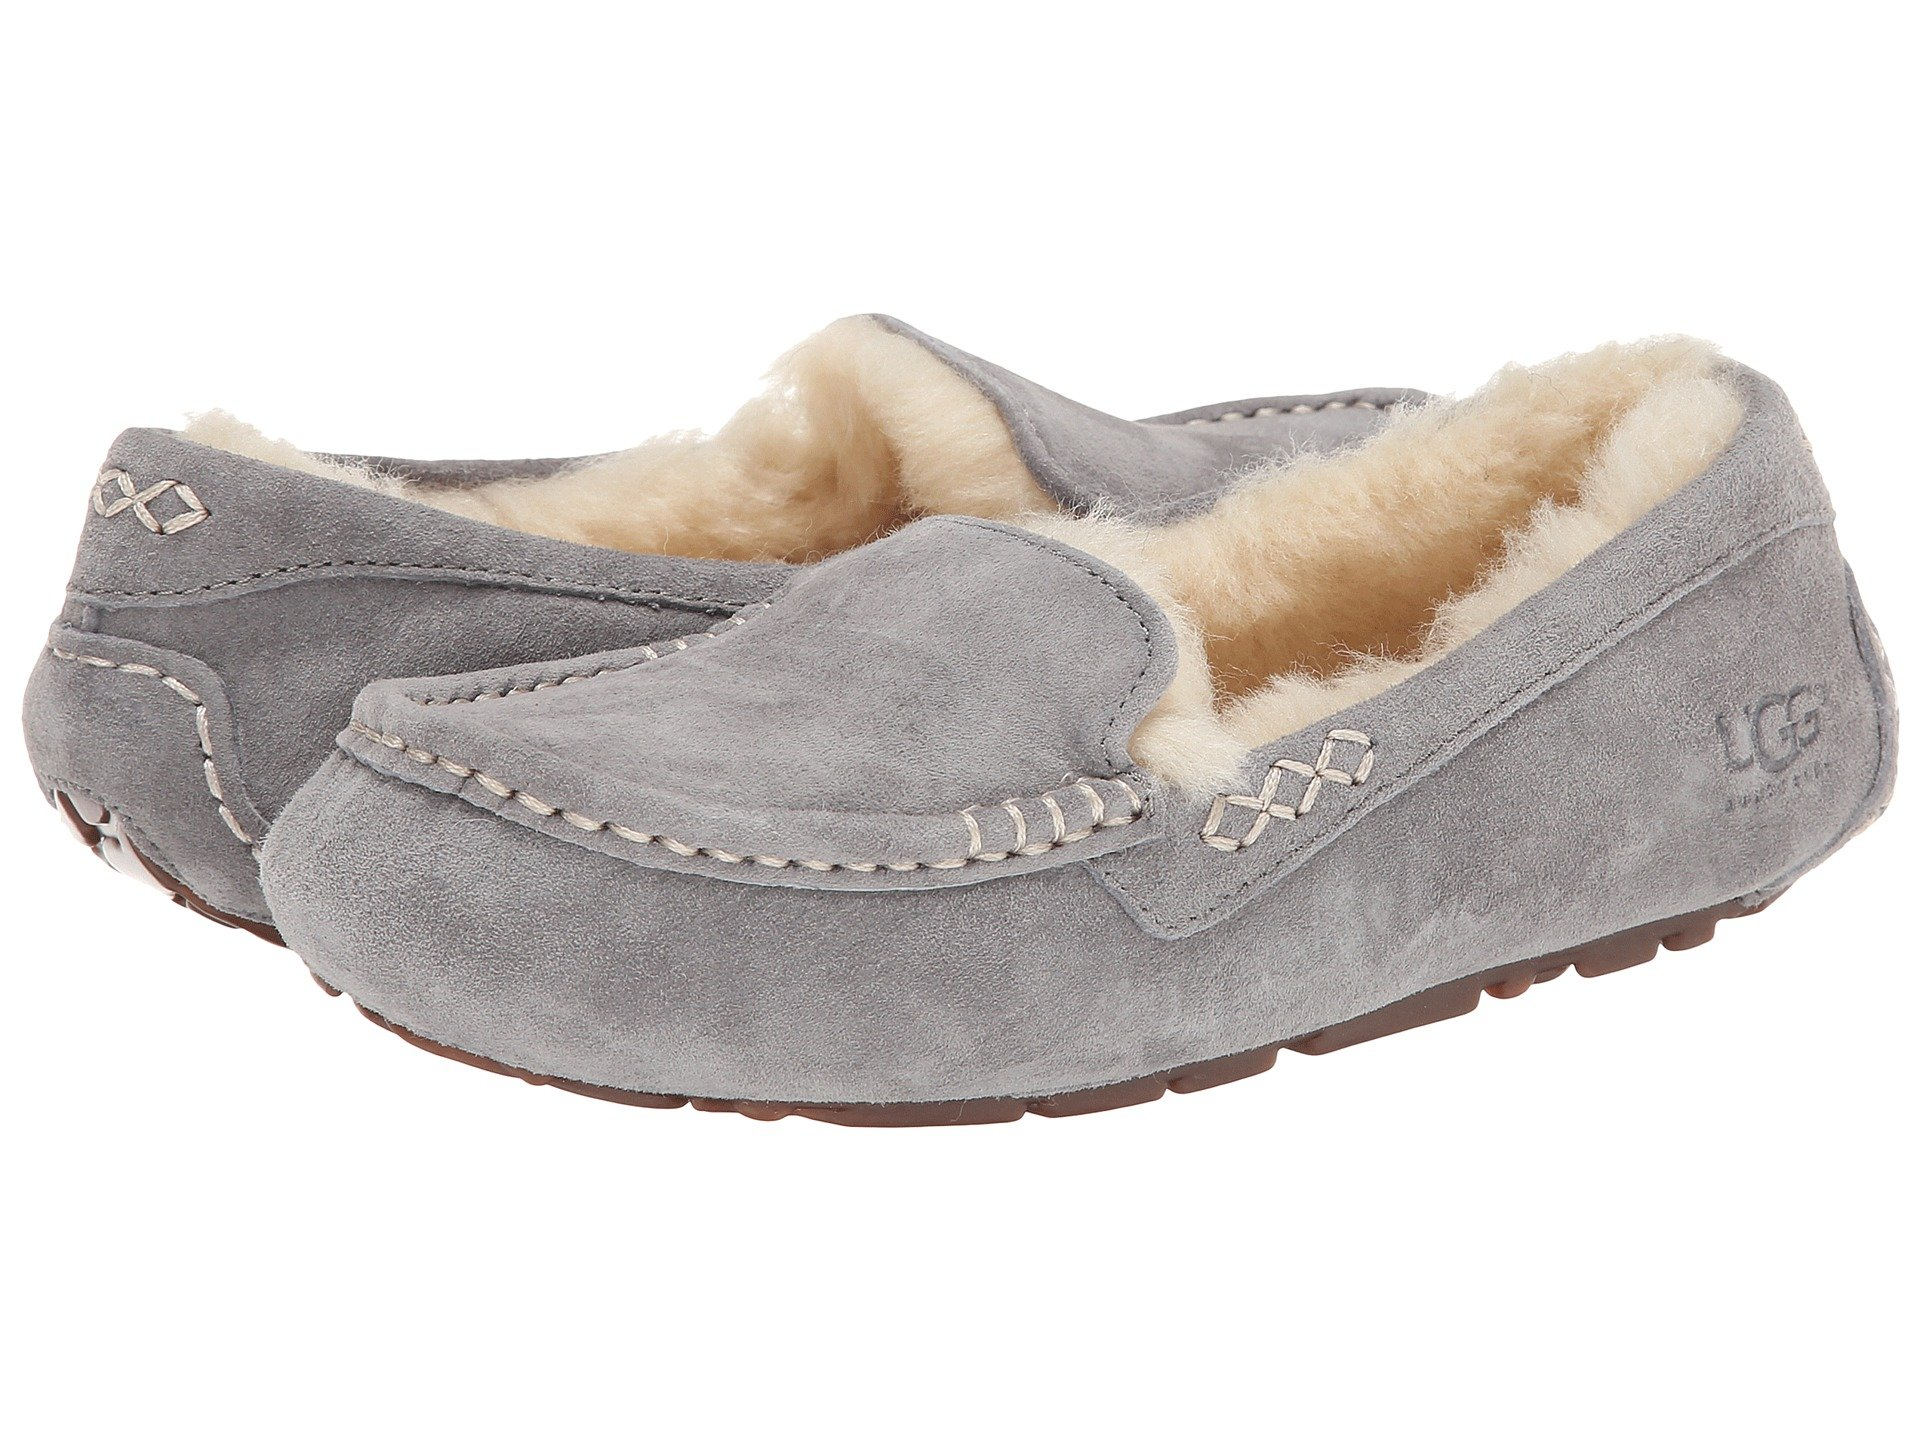 Ugg Slippers Ebay